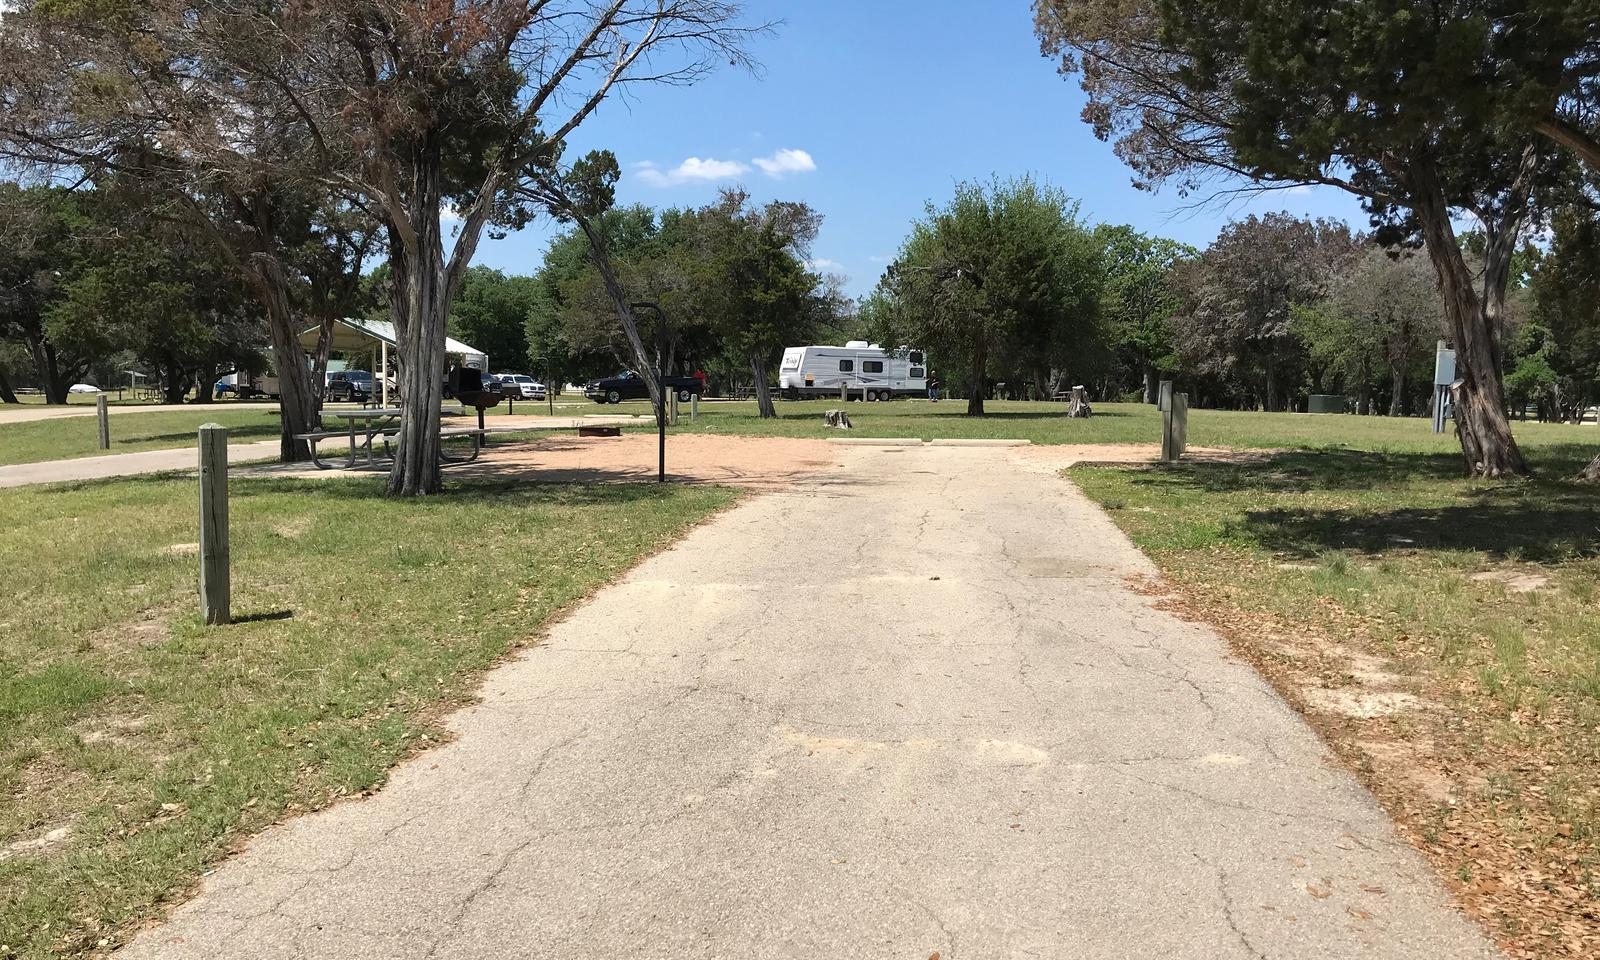 RV site with picnic table, grill, and fire ring.